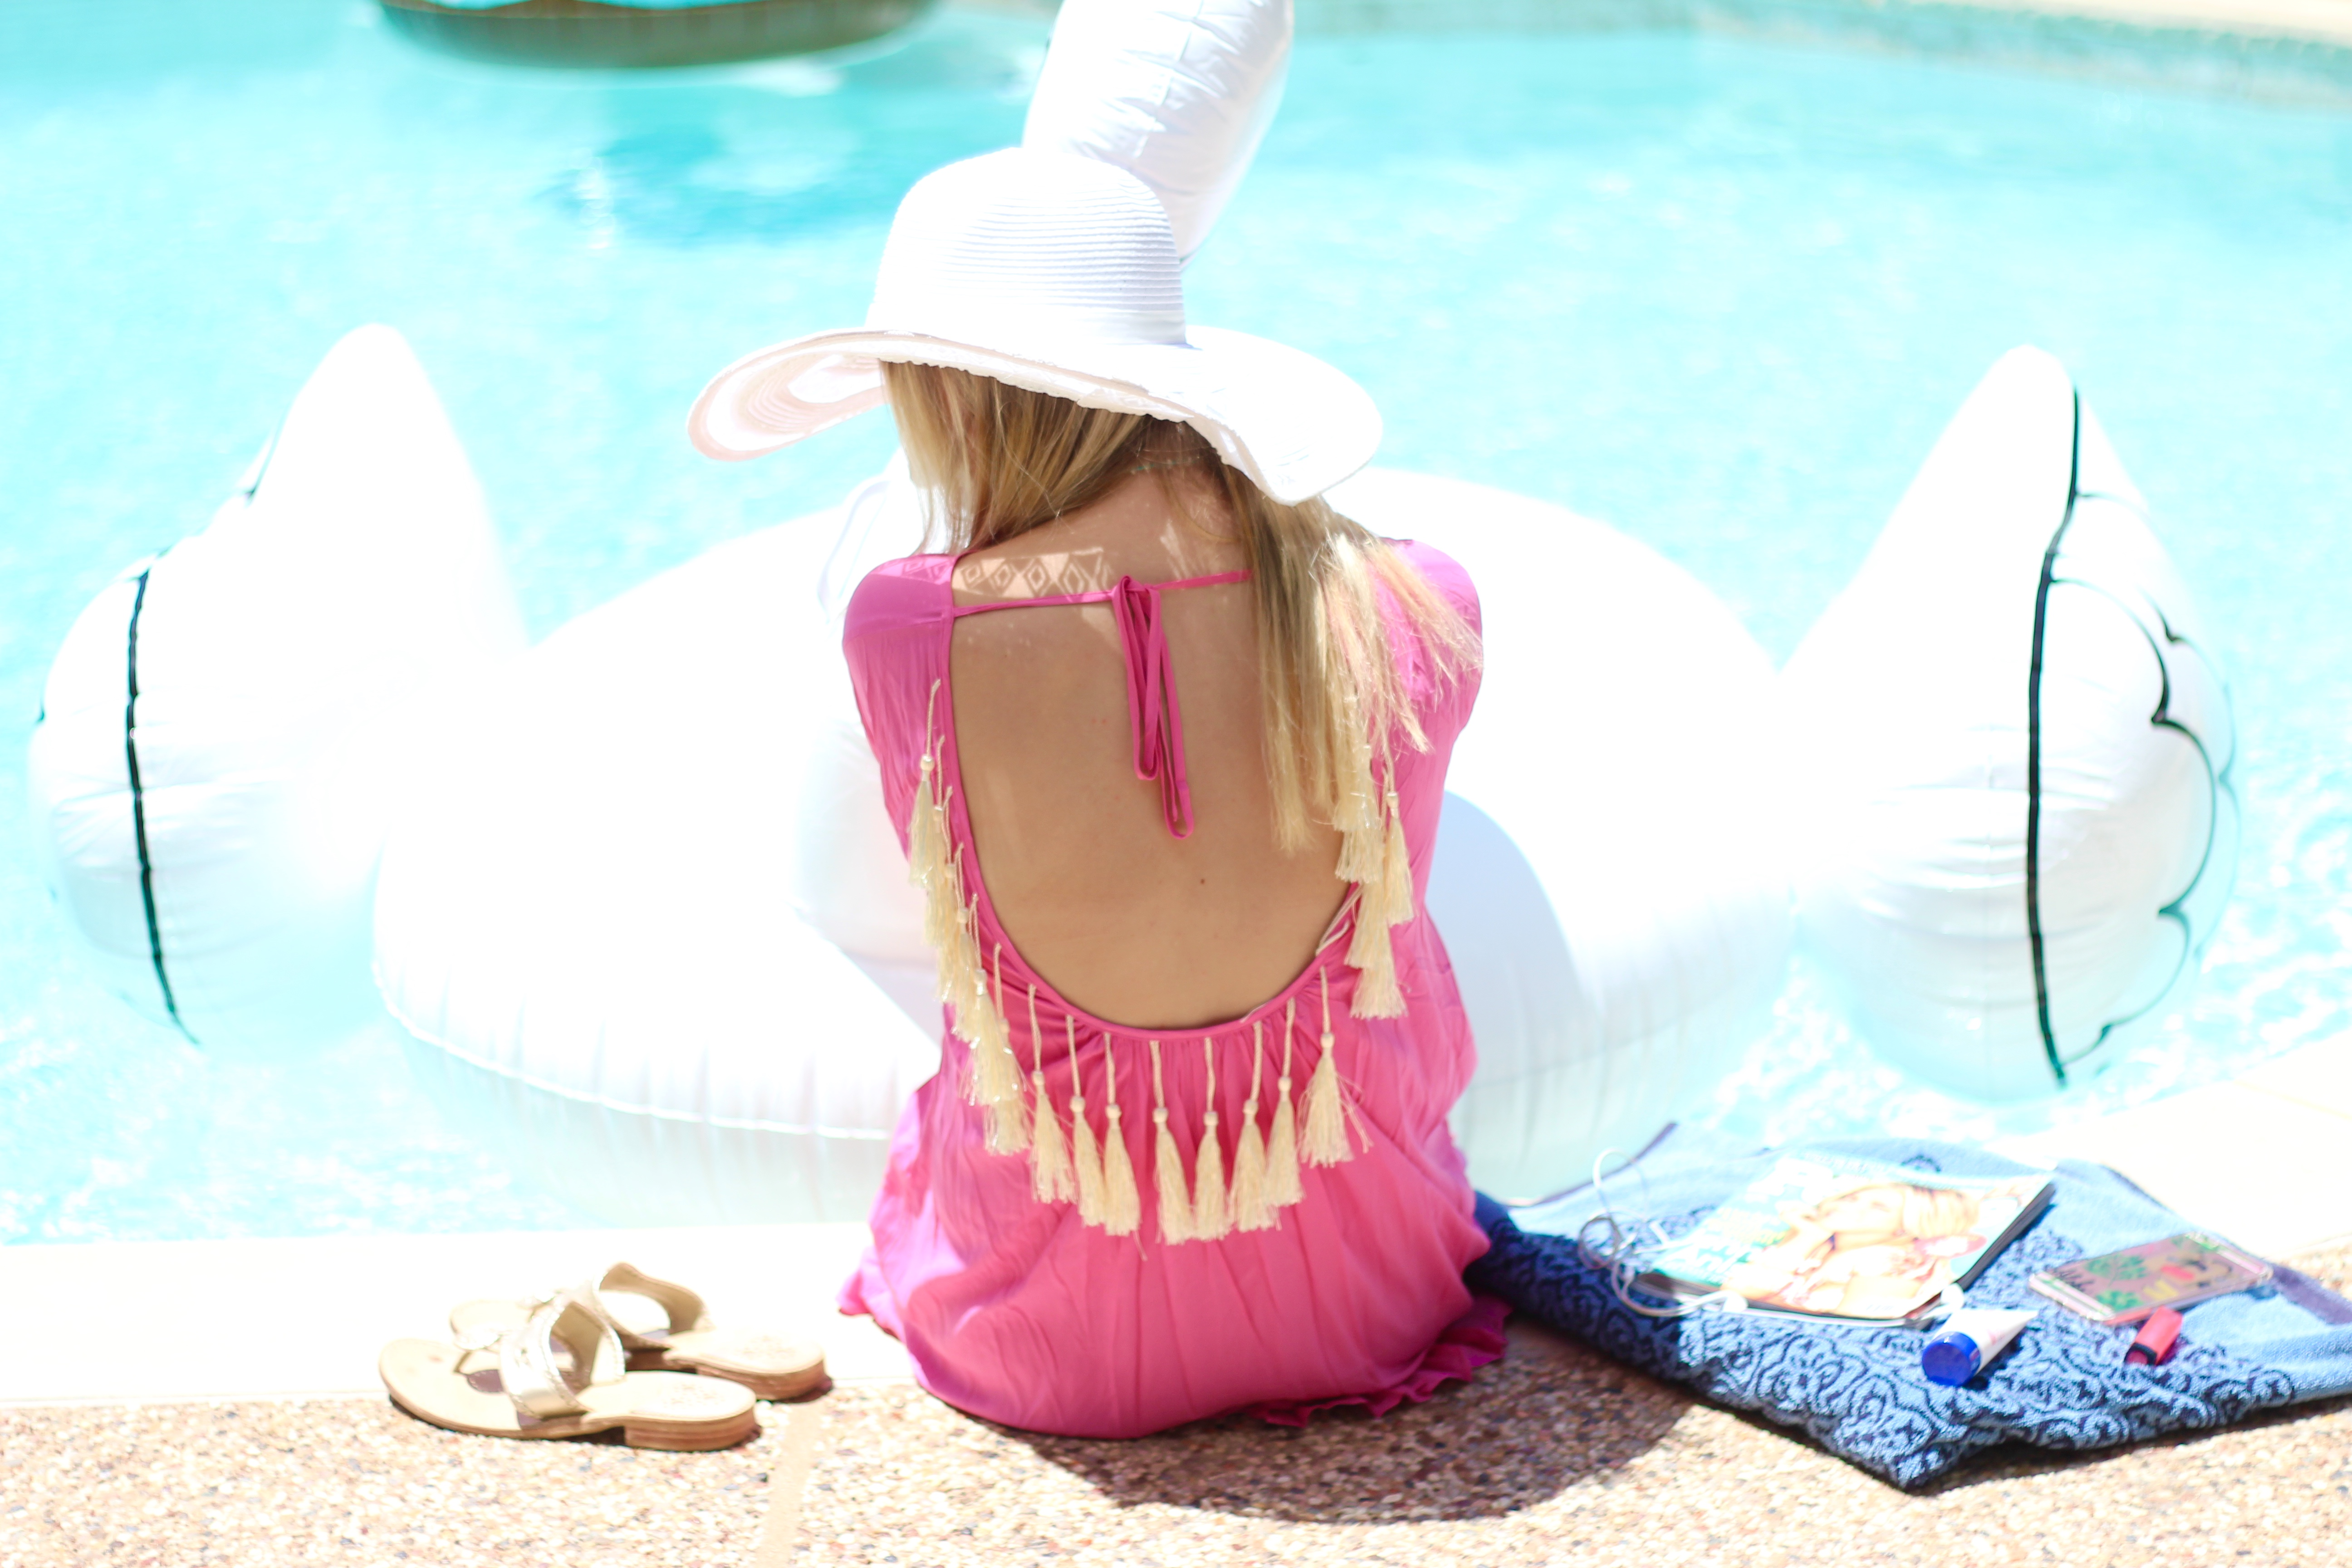 poolside in tassels | Audrey Madison Stowe Blog